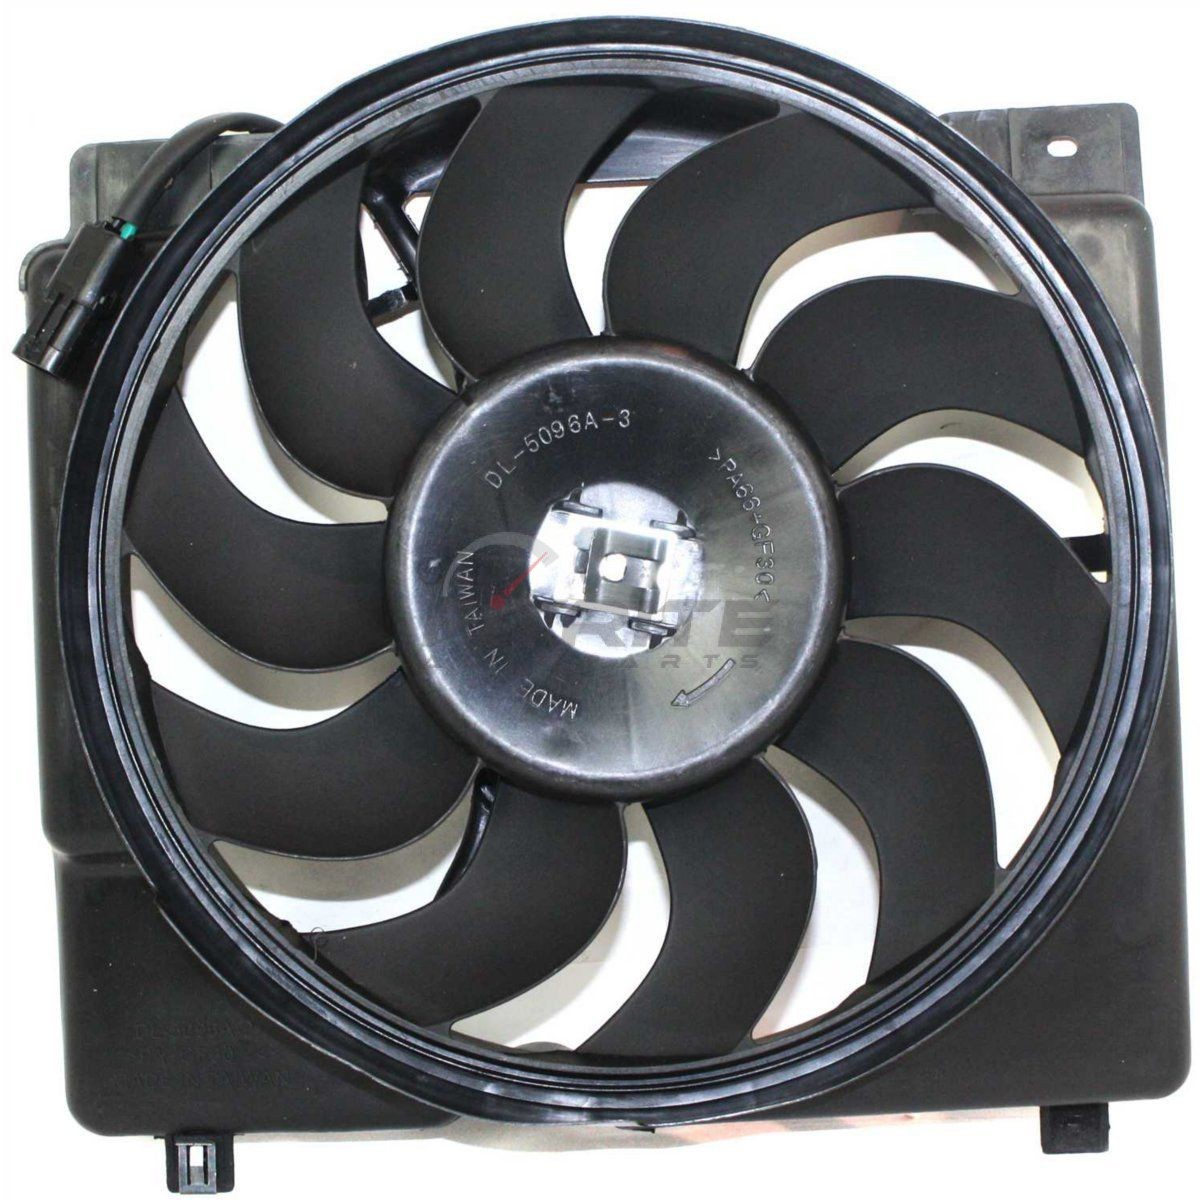 small resolution of motorcycle parts fits jeep cherokee radiator fan shroud 6 cyl 1995 1996 1997 1998 1999 2000 2001